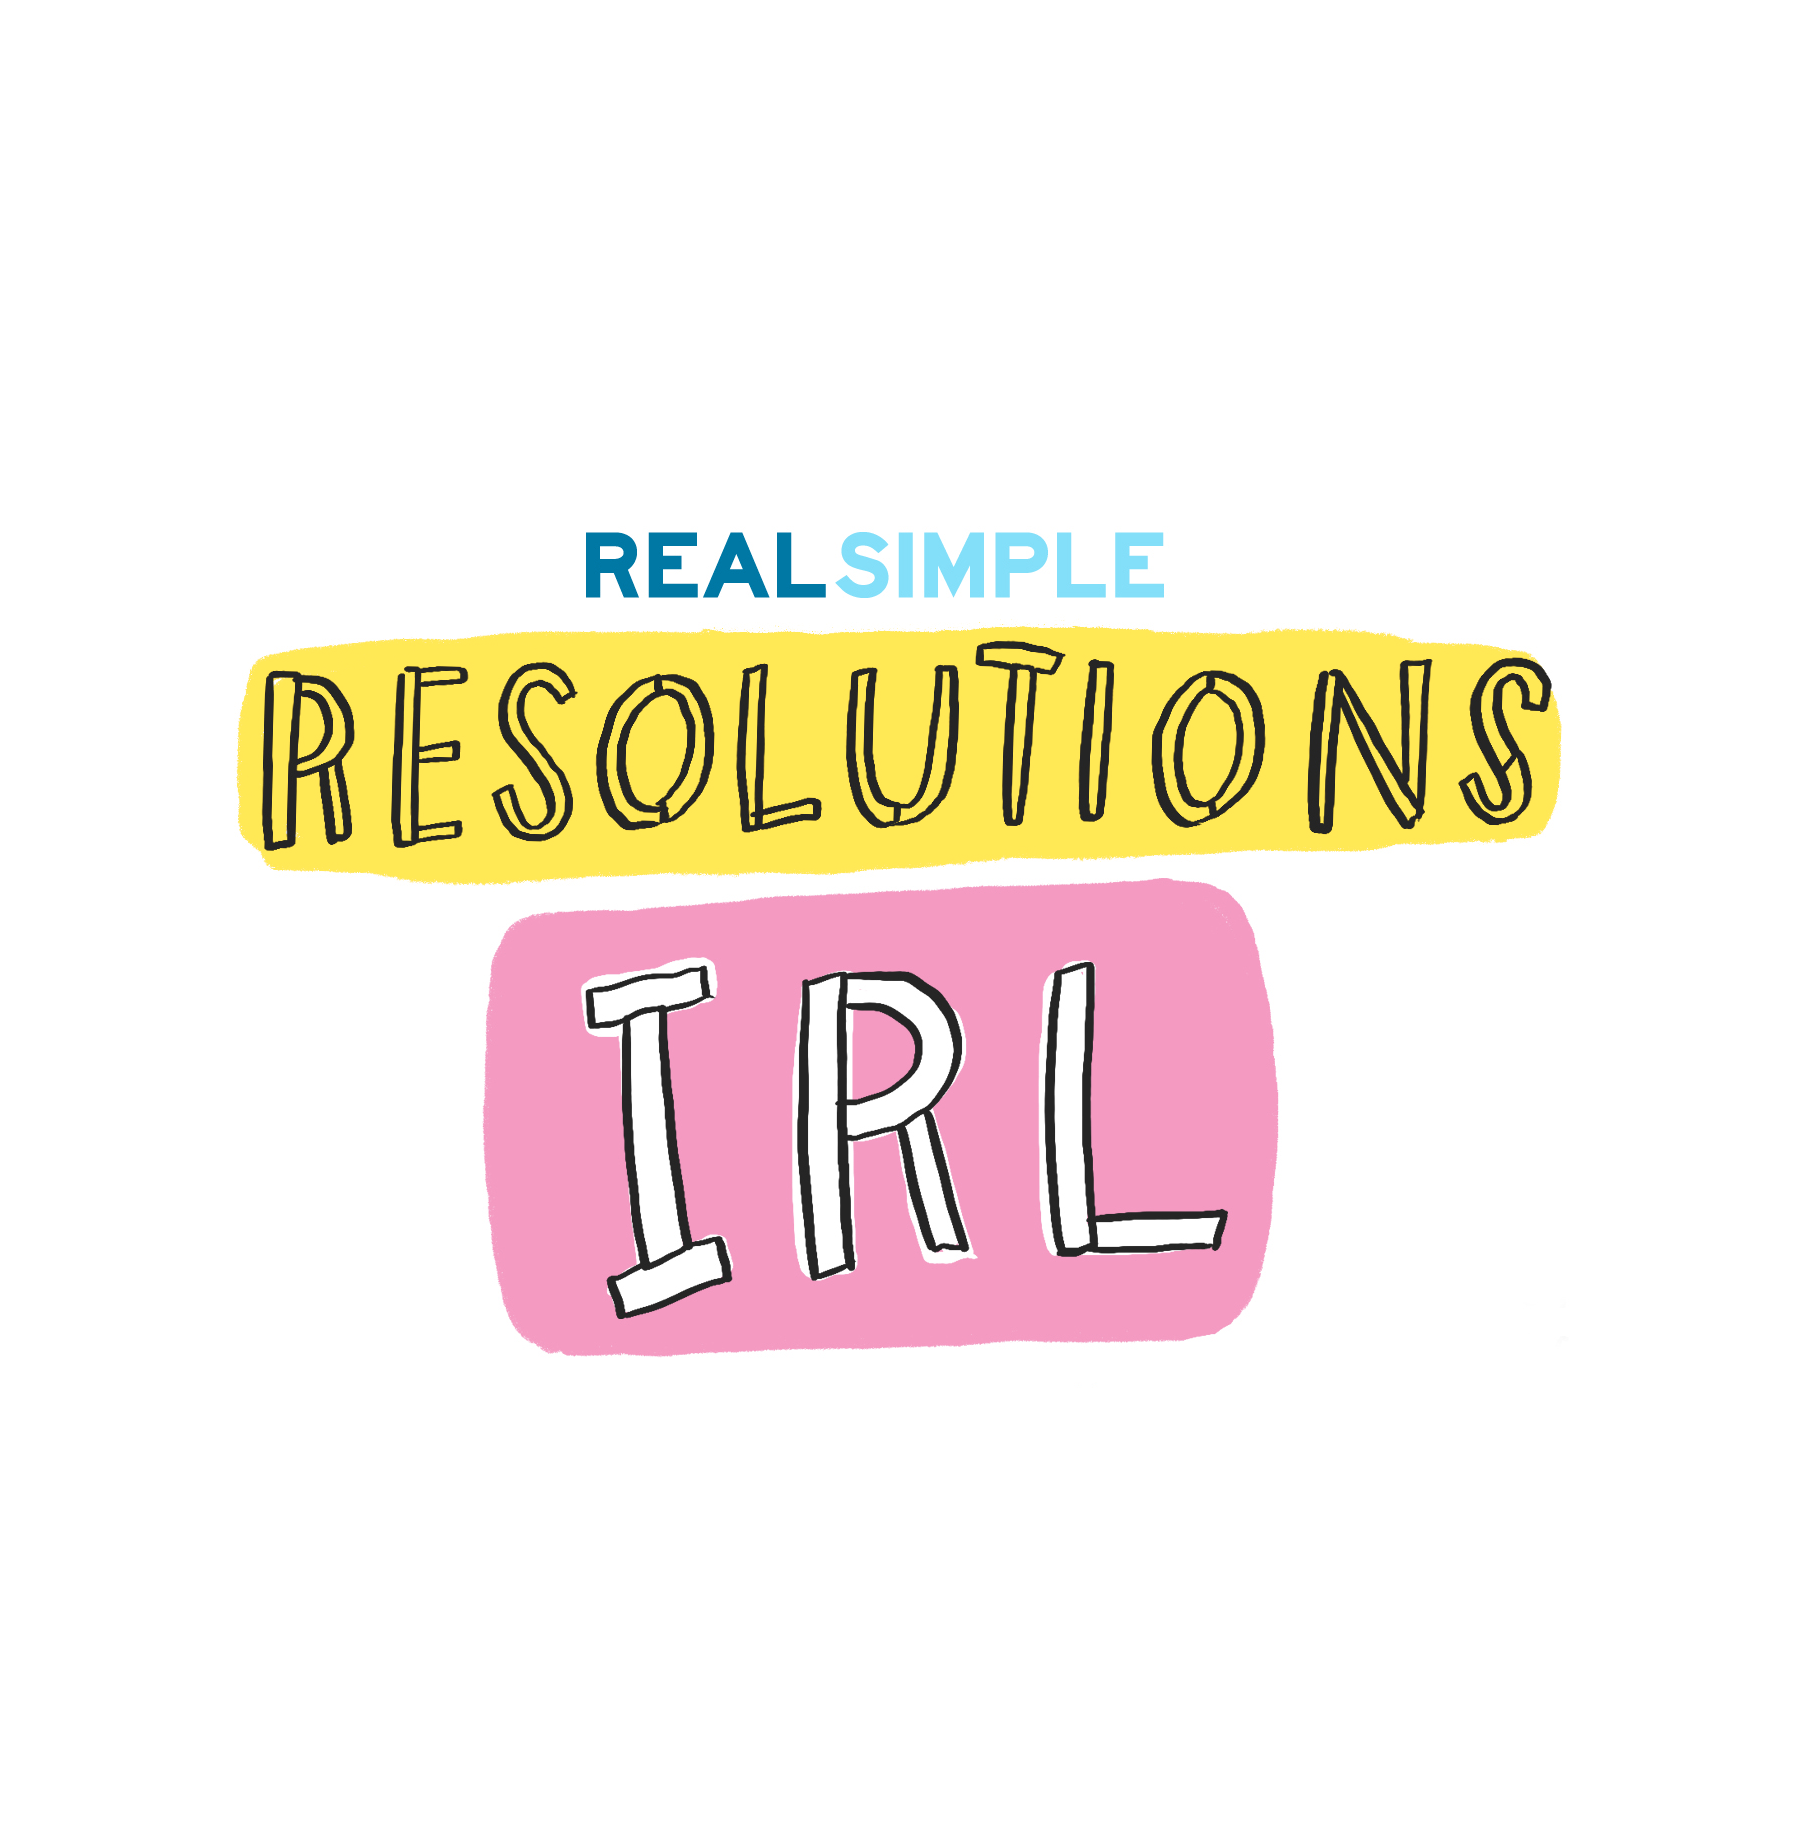 Resolutions IRL